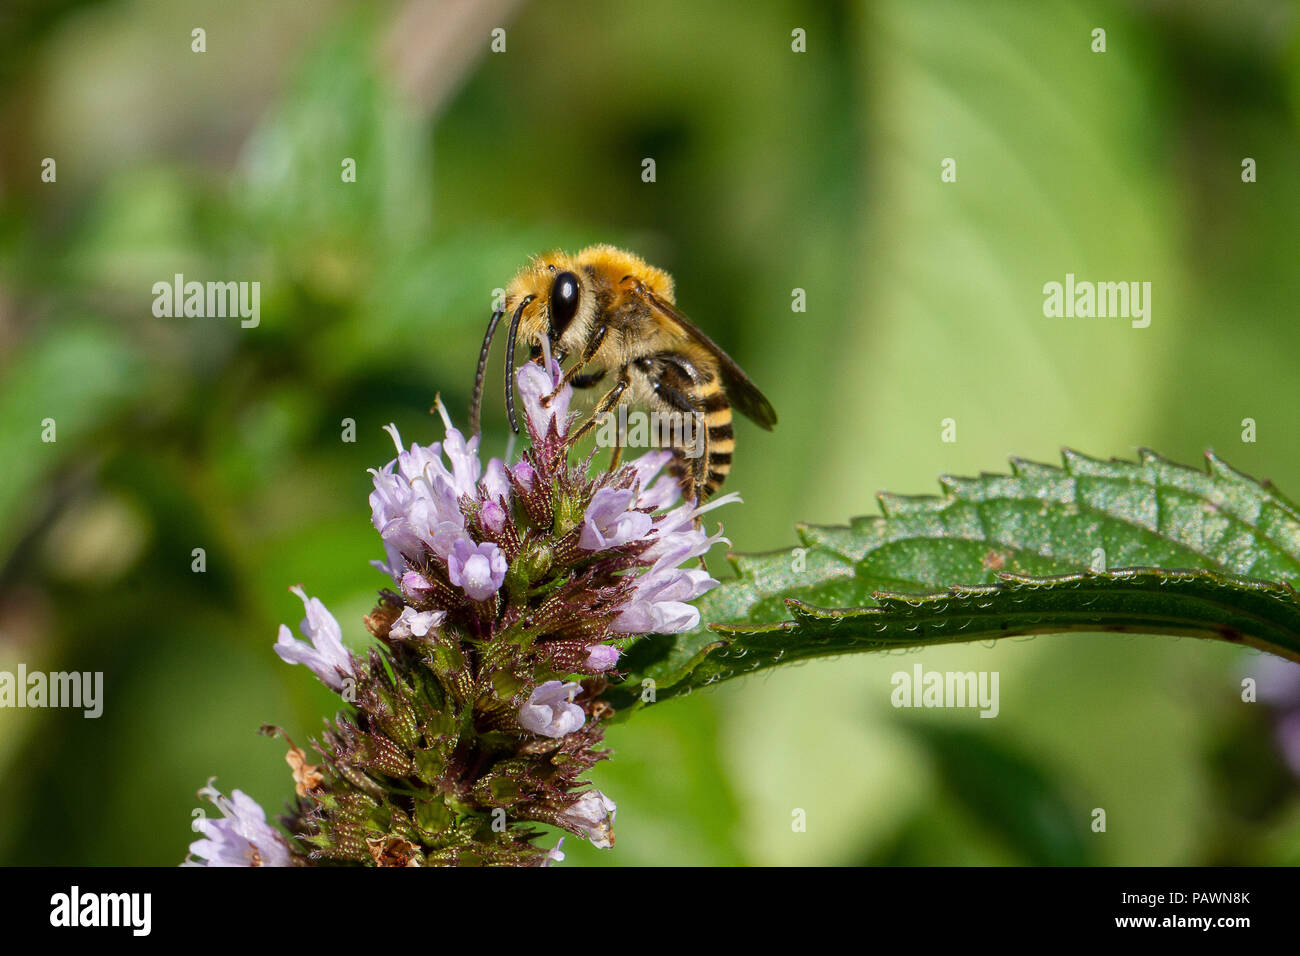 Bee gathering pollen on a mint flower - Stock Image